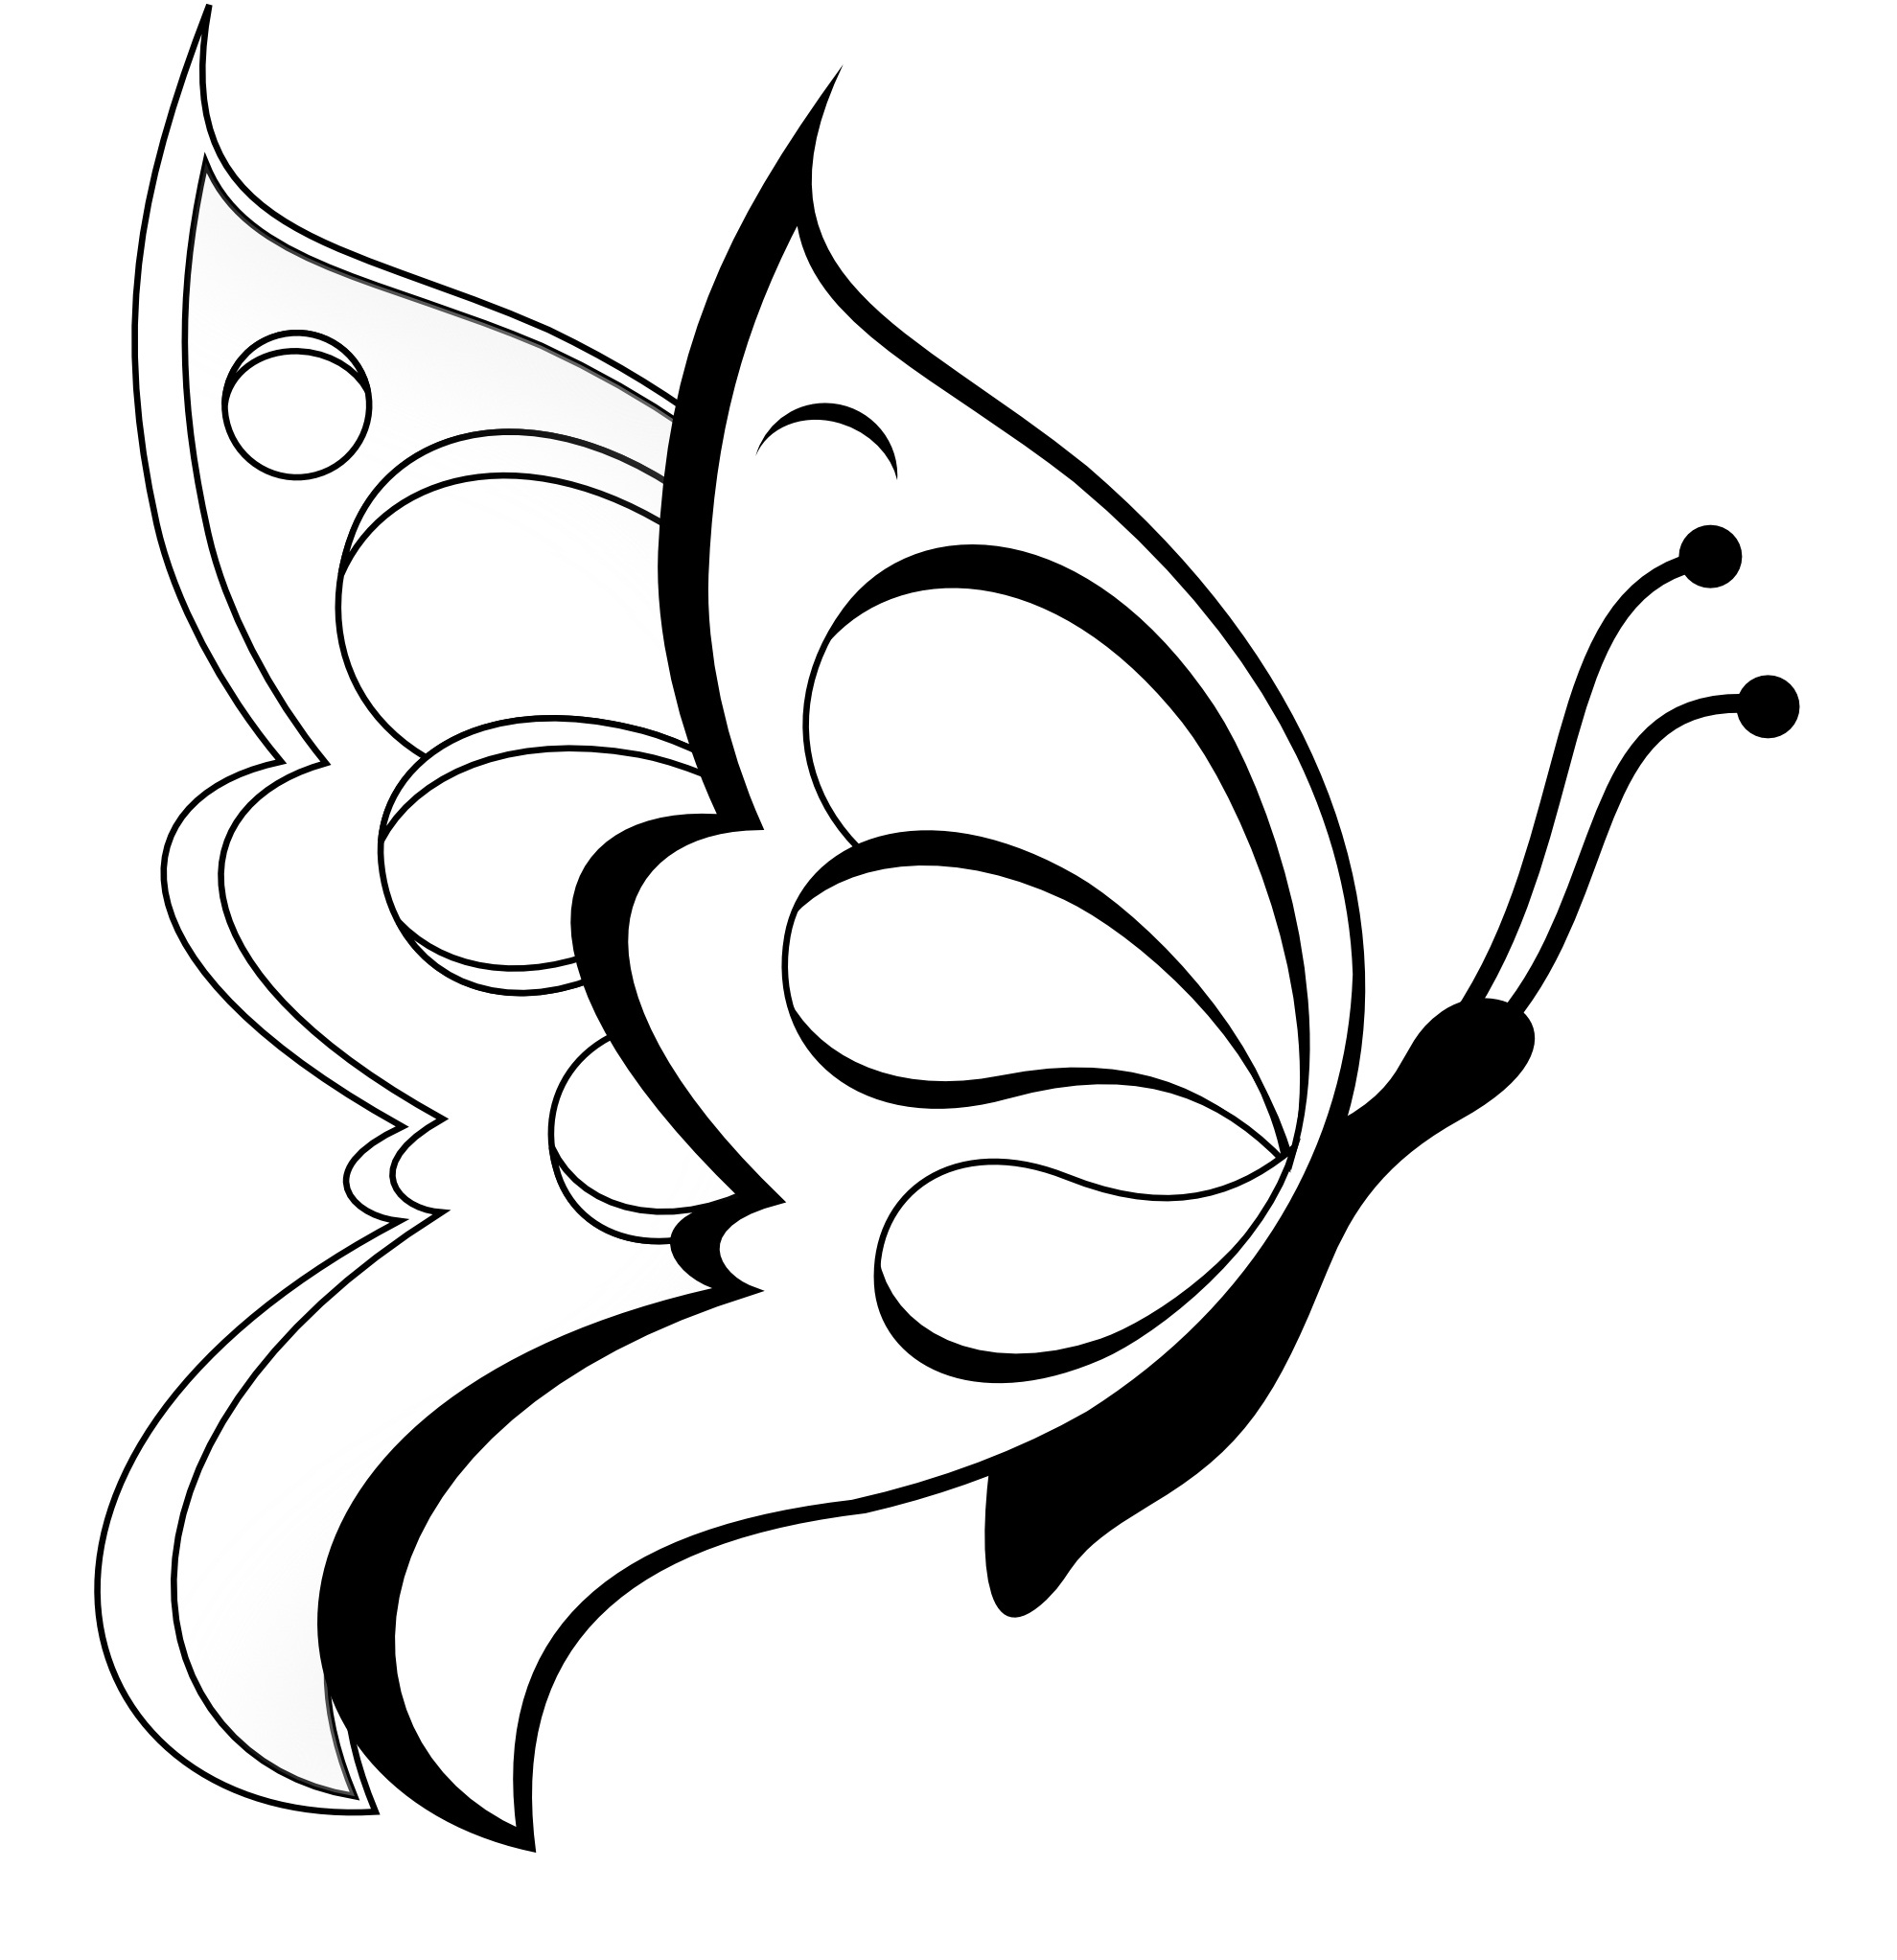 butterfly coloring sheet printable butterfly coloring printables for kids printable butterfly sheet coloring